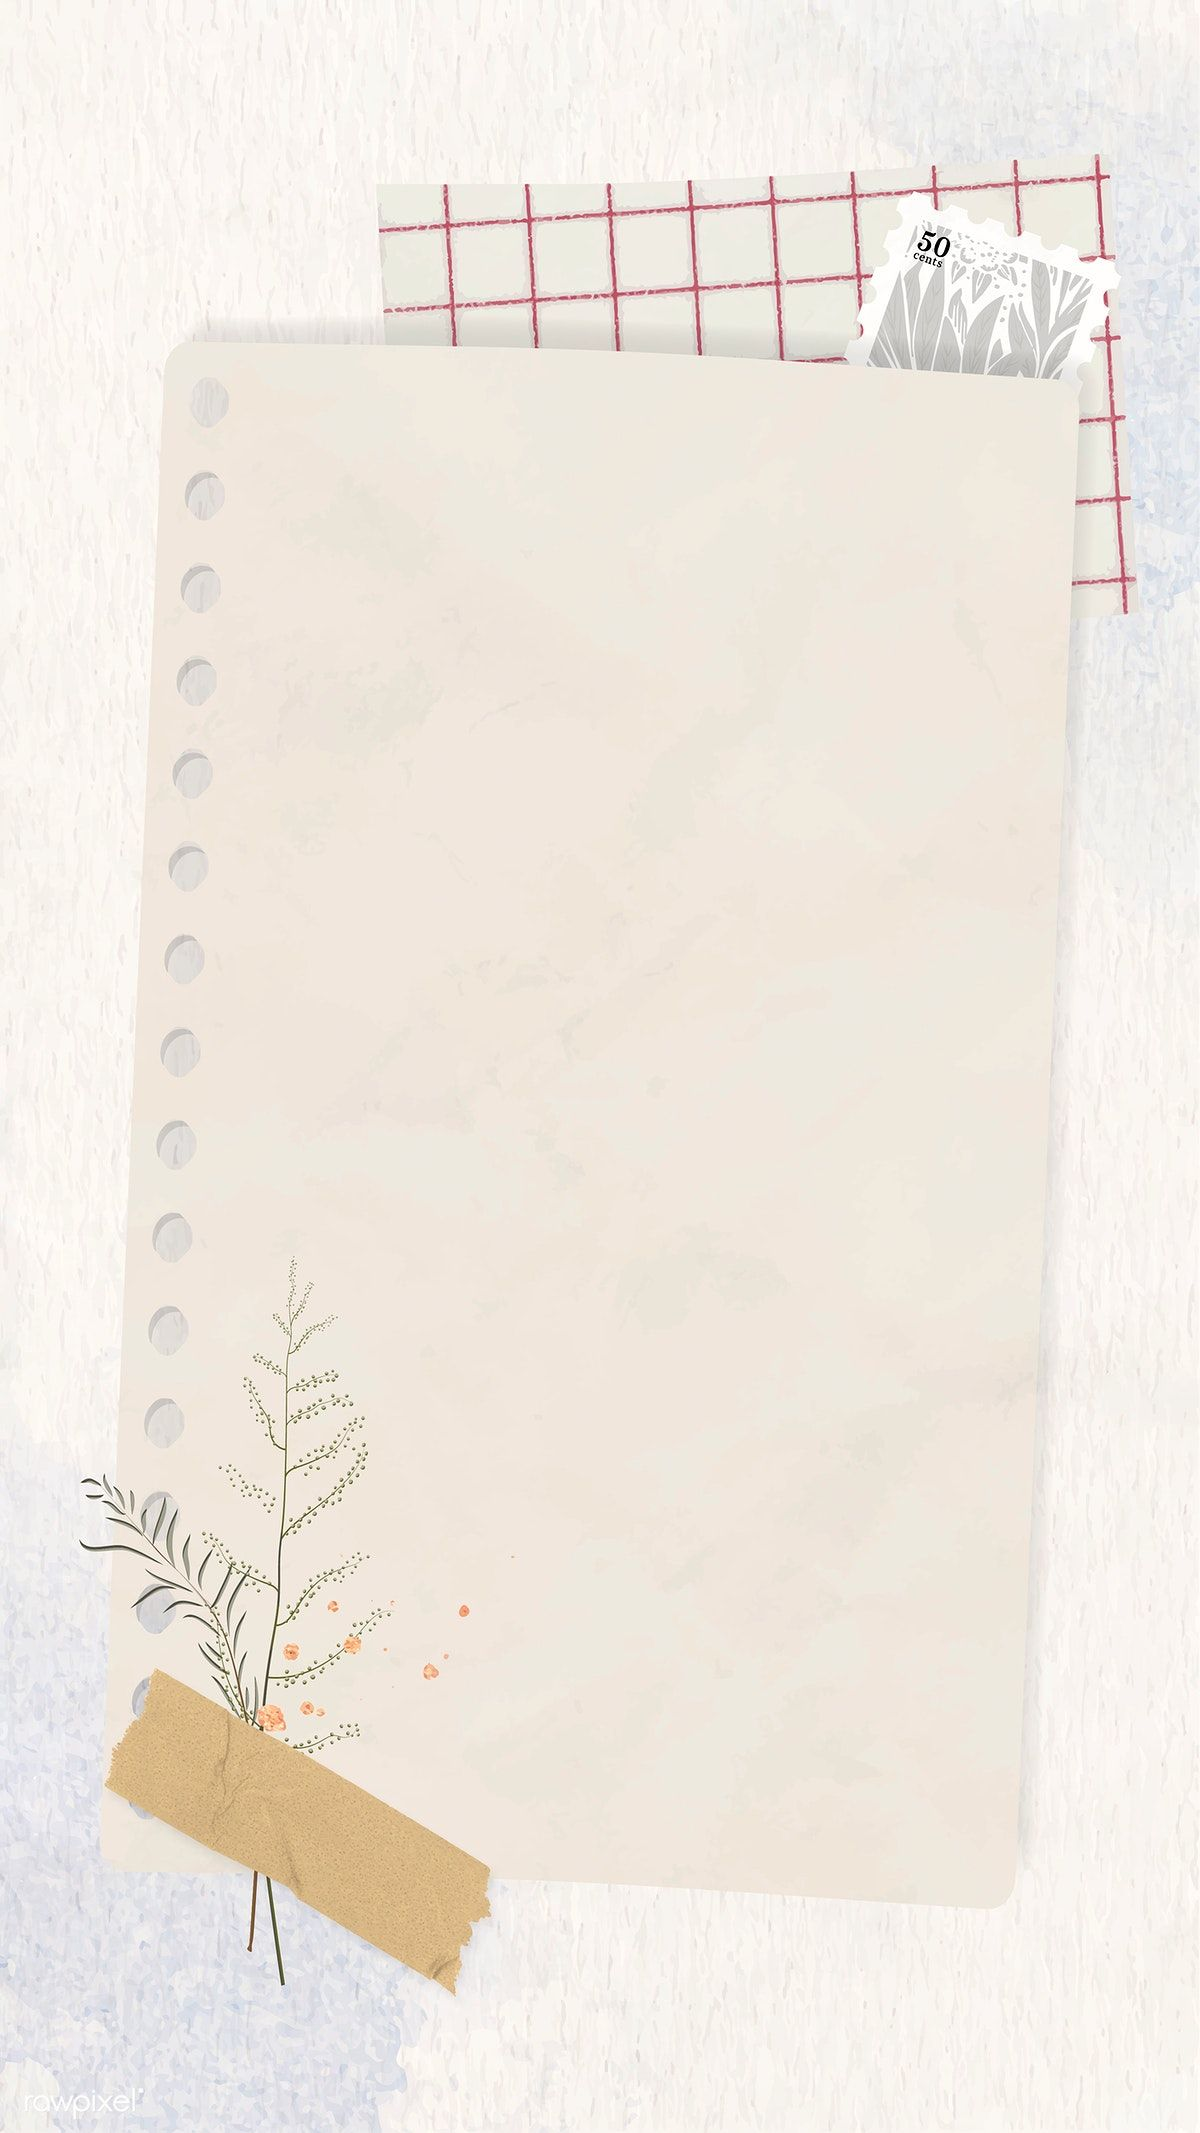 Download Premium Vector Of Ripped Paper Mobile Phone Wallpaper Vector Instagram Frame Template Paper Background Texture Powerpoint Background Design